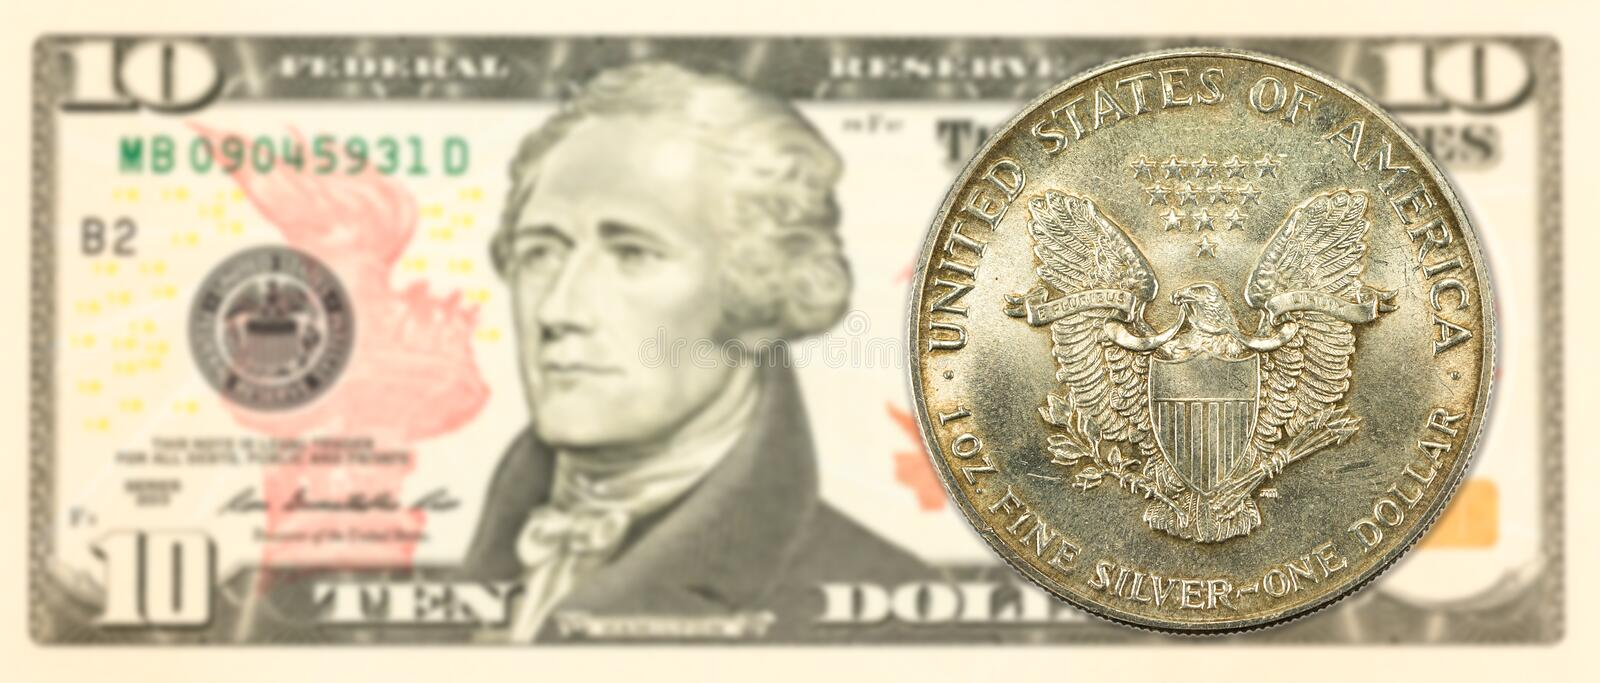 1 united states silver dollar coin against 10 us-dollar note stock photography